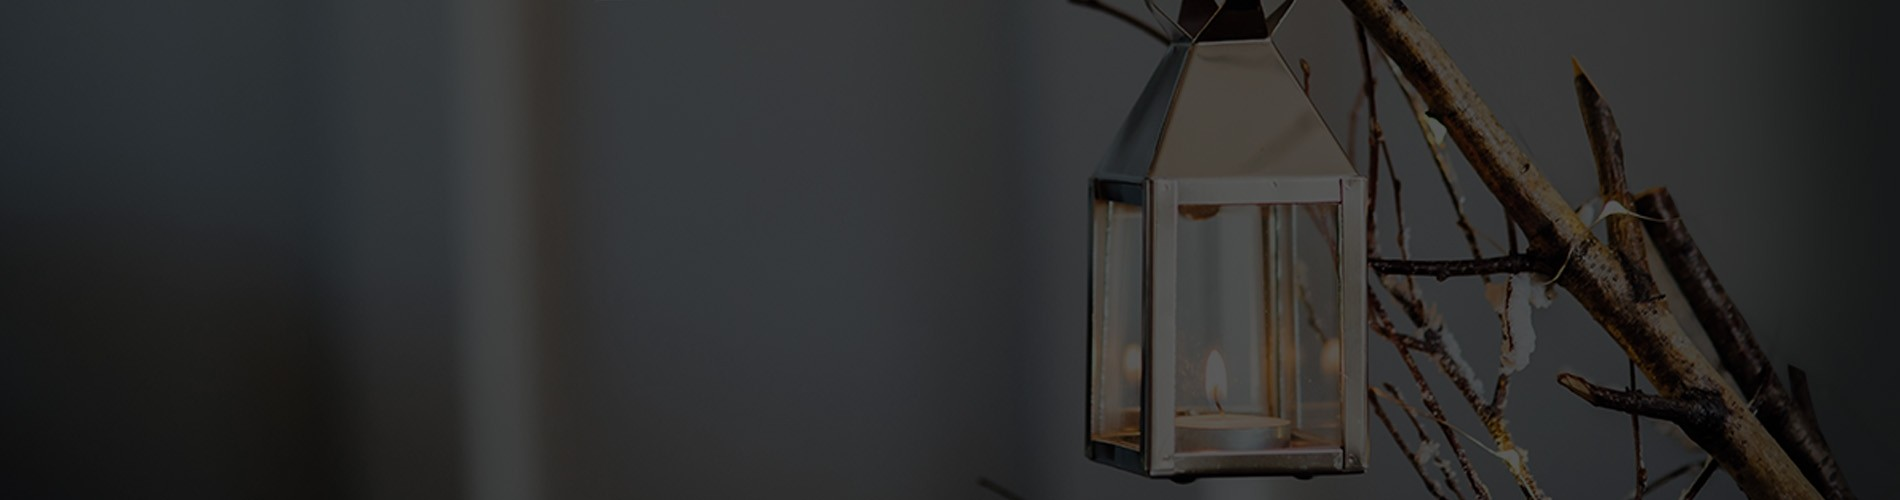 Buy copper lanterns from Lagoon, designer furniture specialists